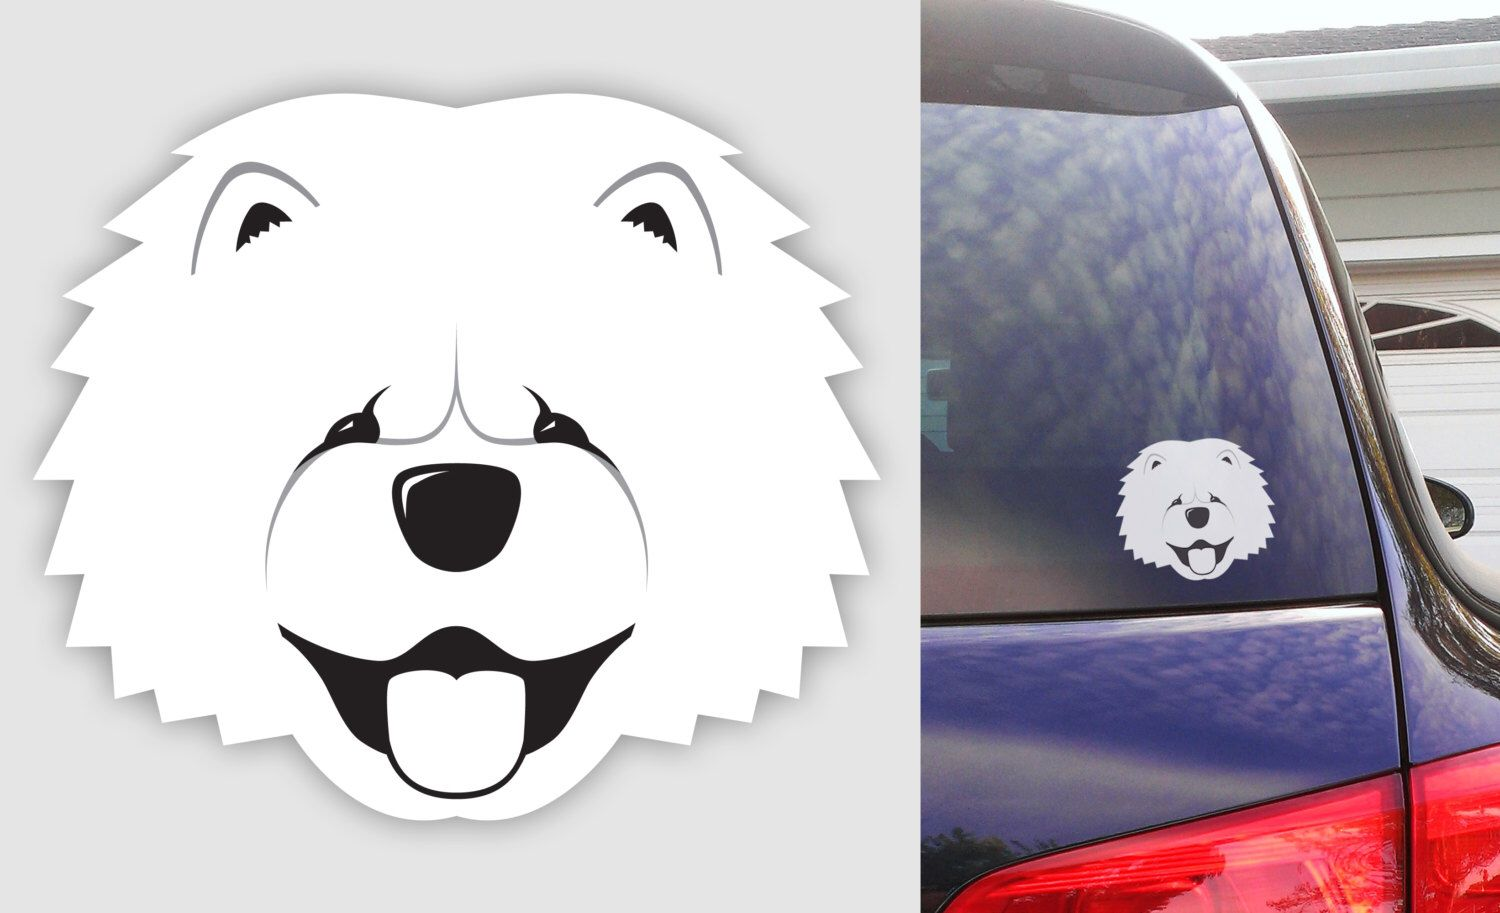 Chow Chow Dog Sticker - Durable Vinyl Weatherproof Decal by BulldogIM on Etsy https://www.etsy.com/listing/184683032/chow-chow-dog-sticker-durable-vinyl